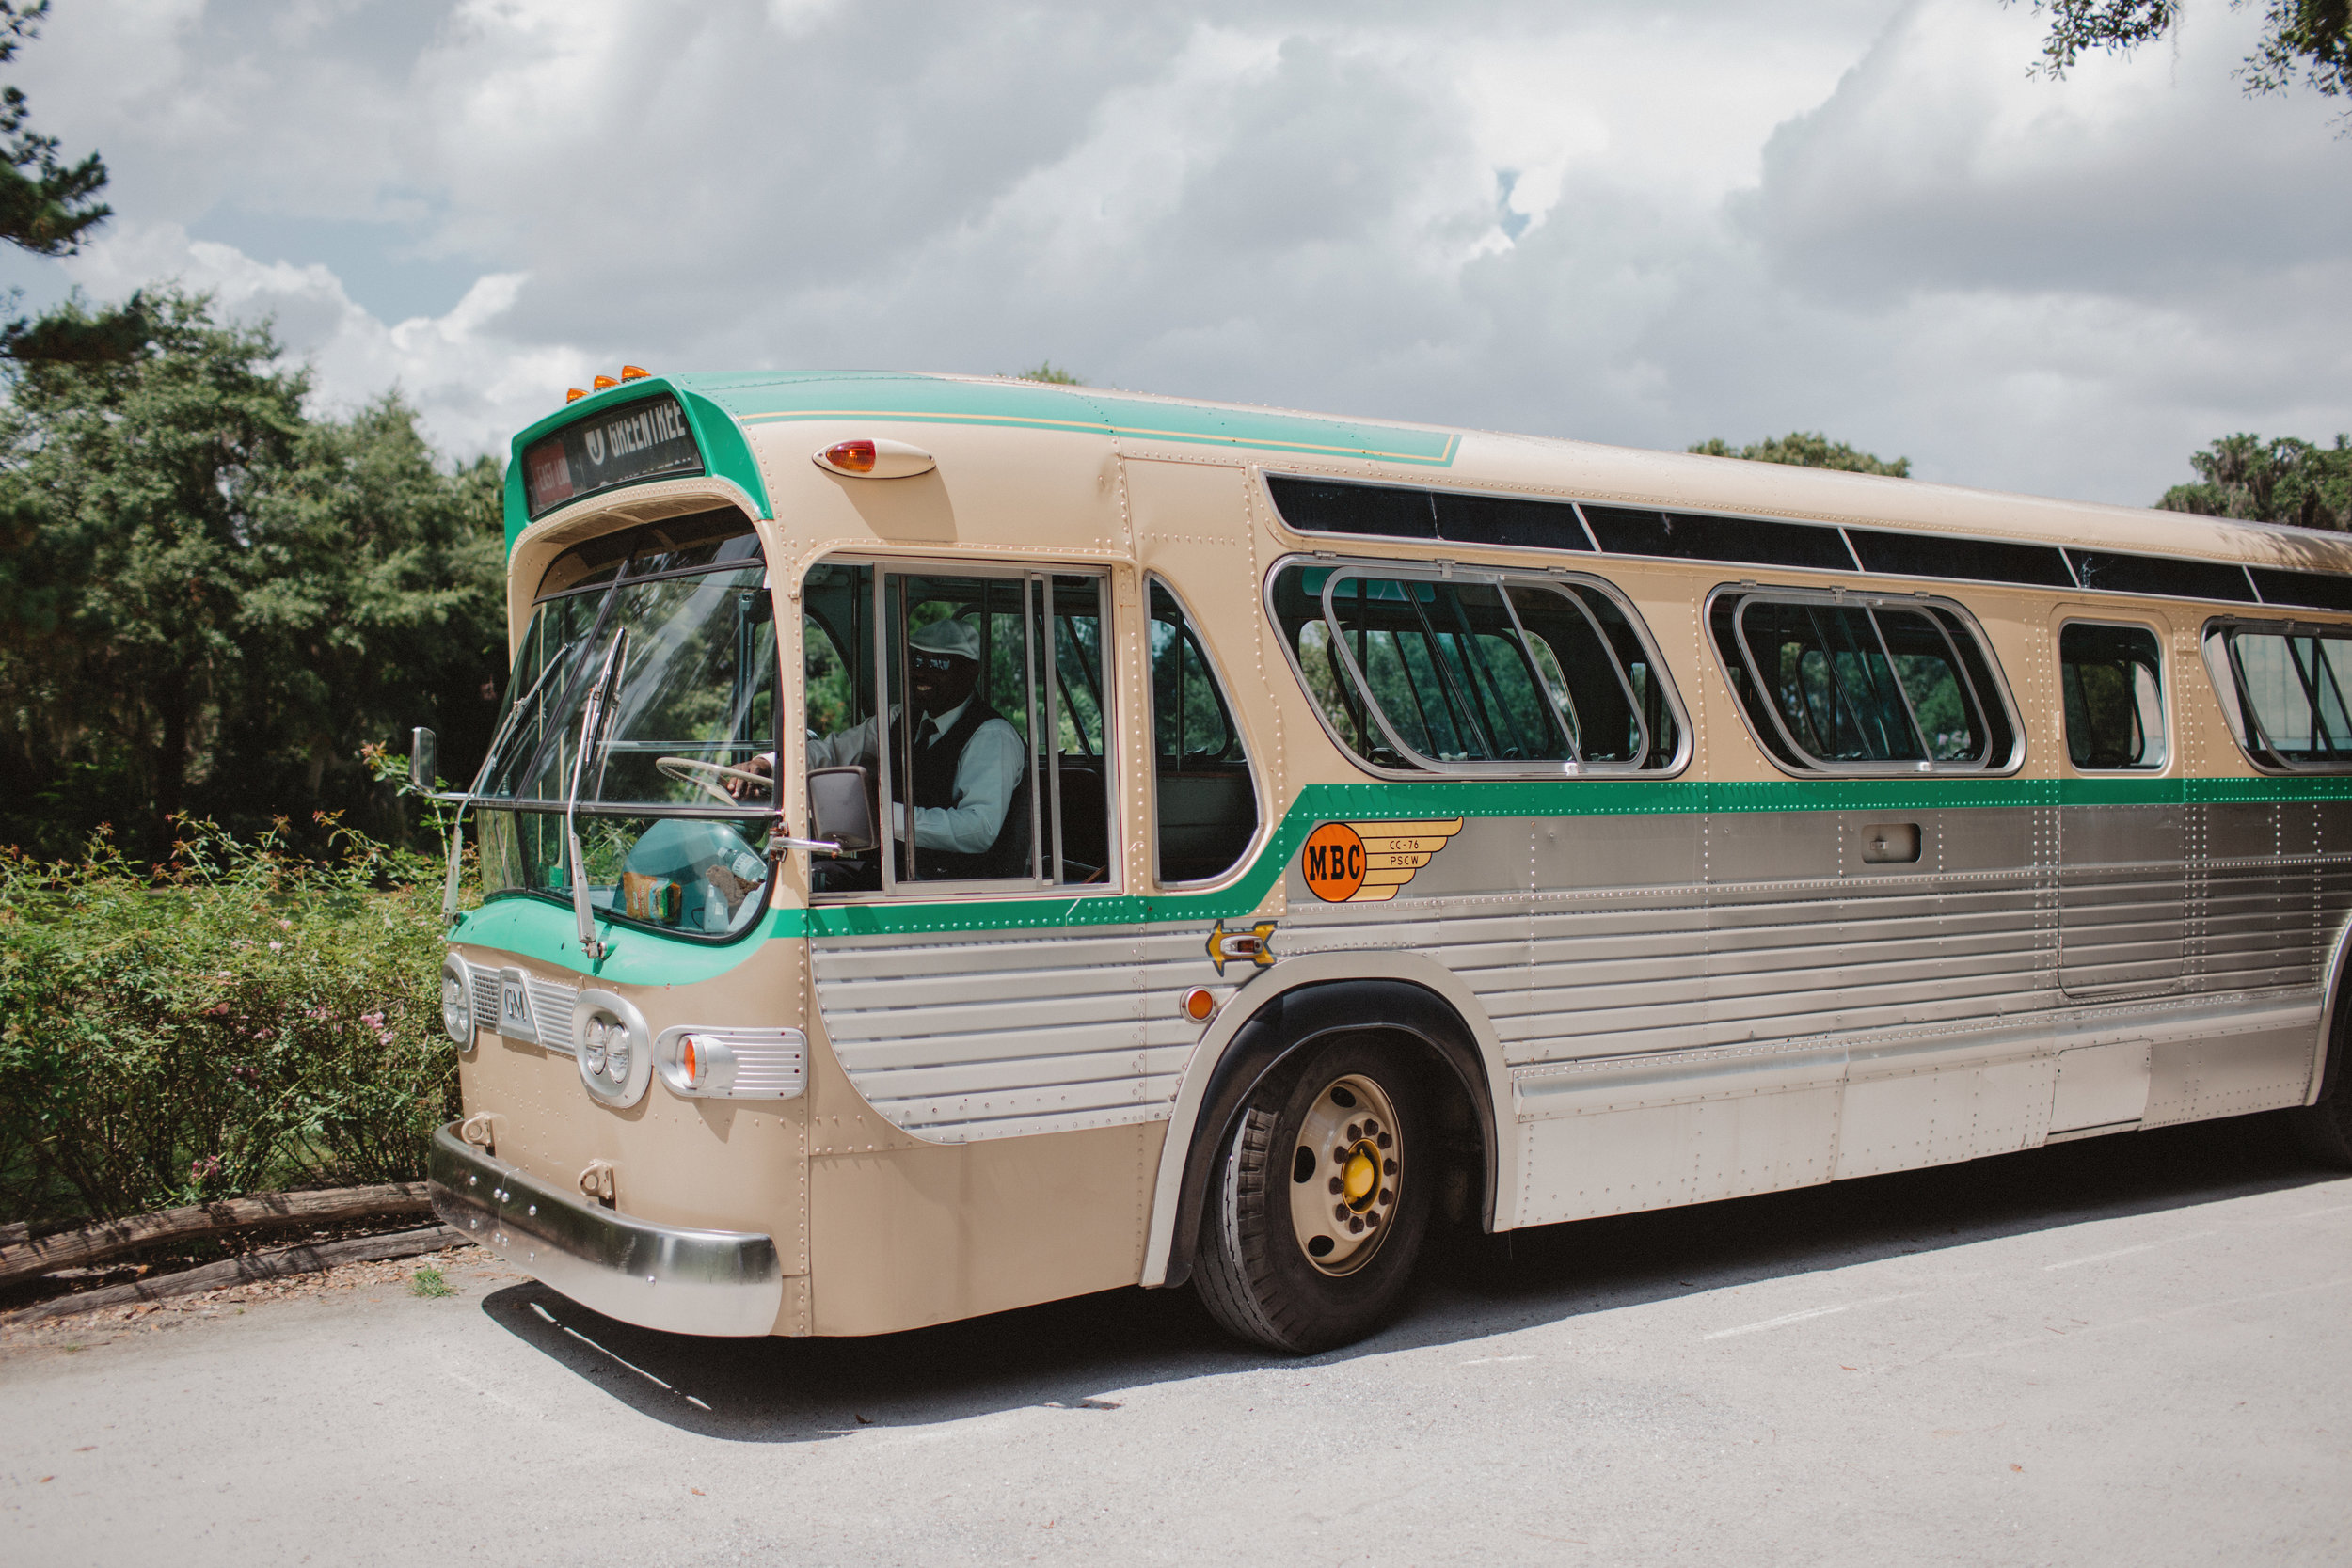 1966 General Motor Bus - by Lowcountry Valet & Shuttle Co.